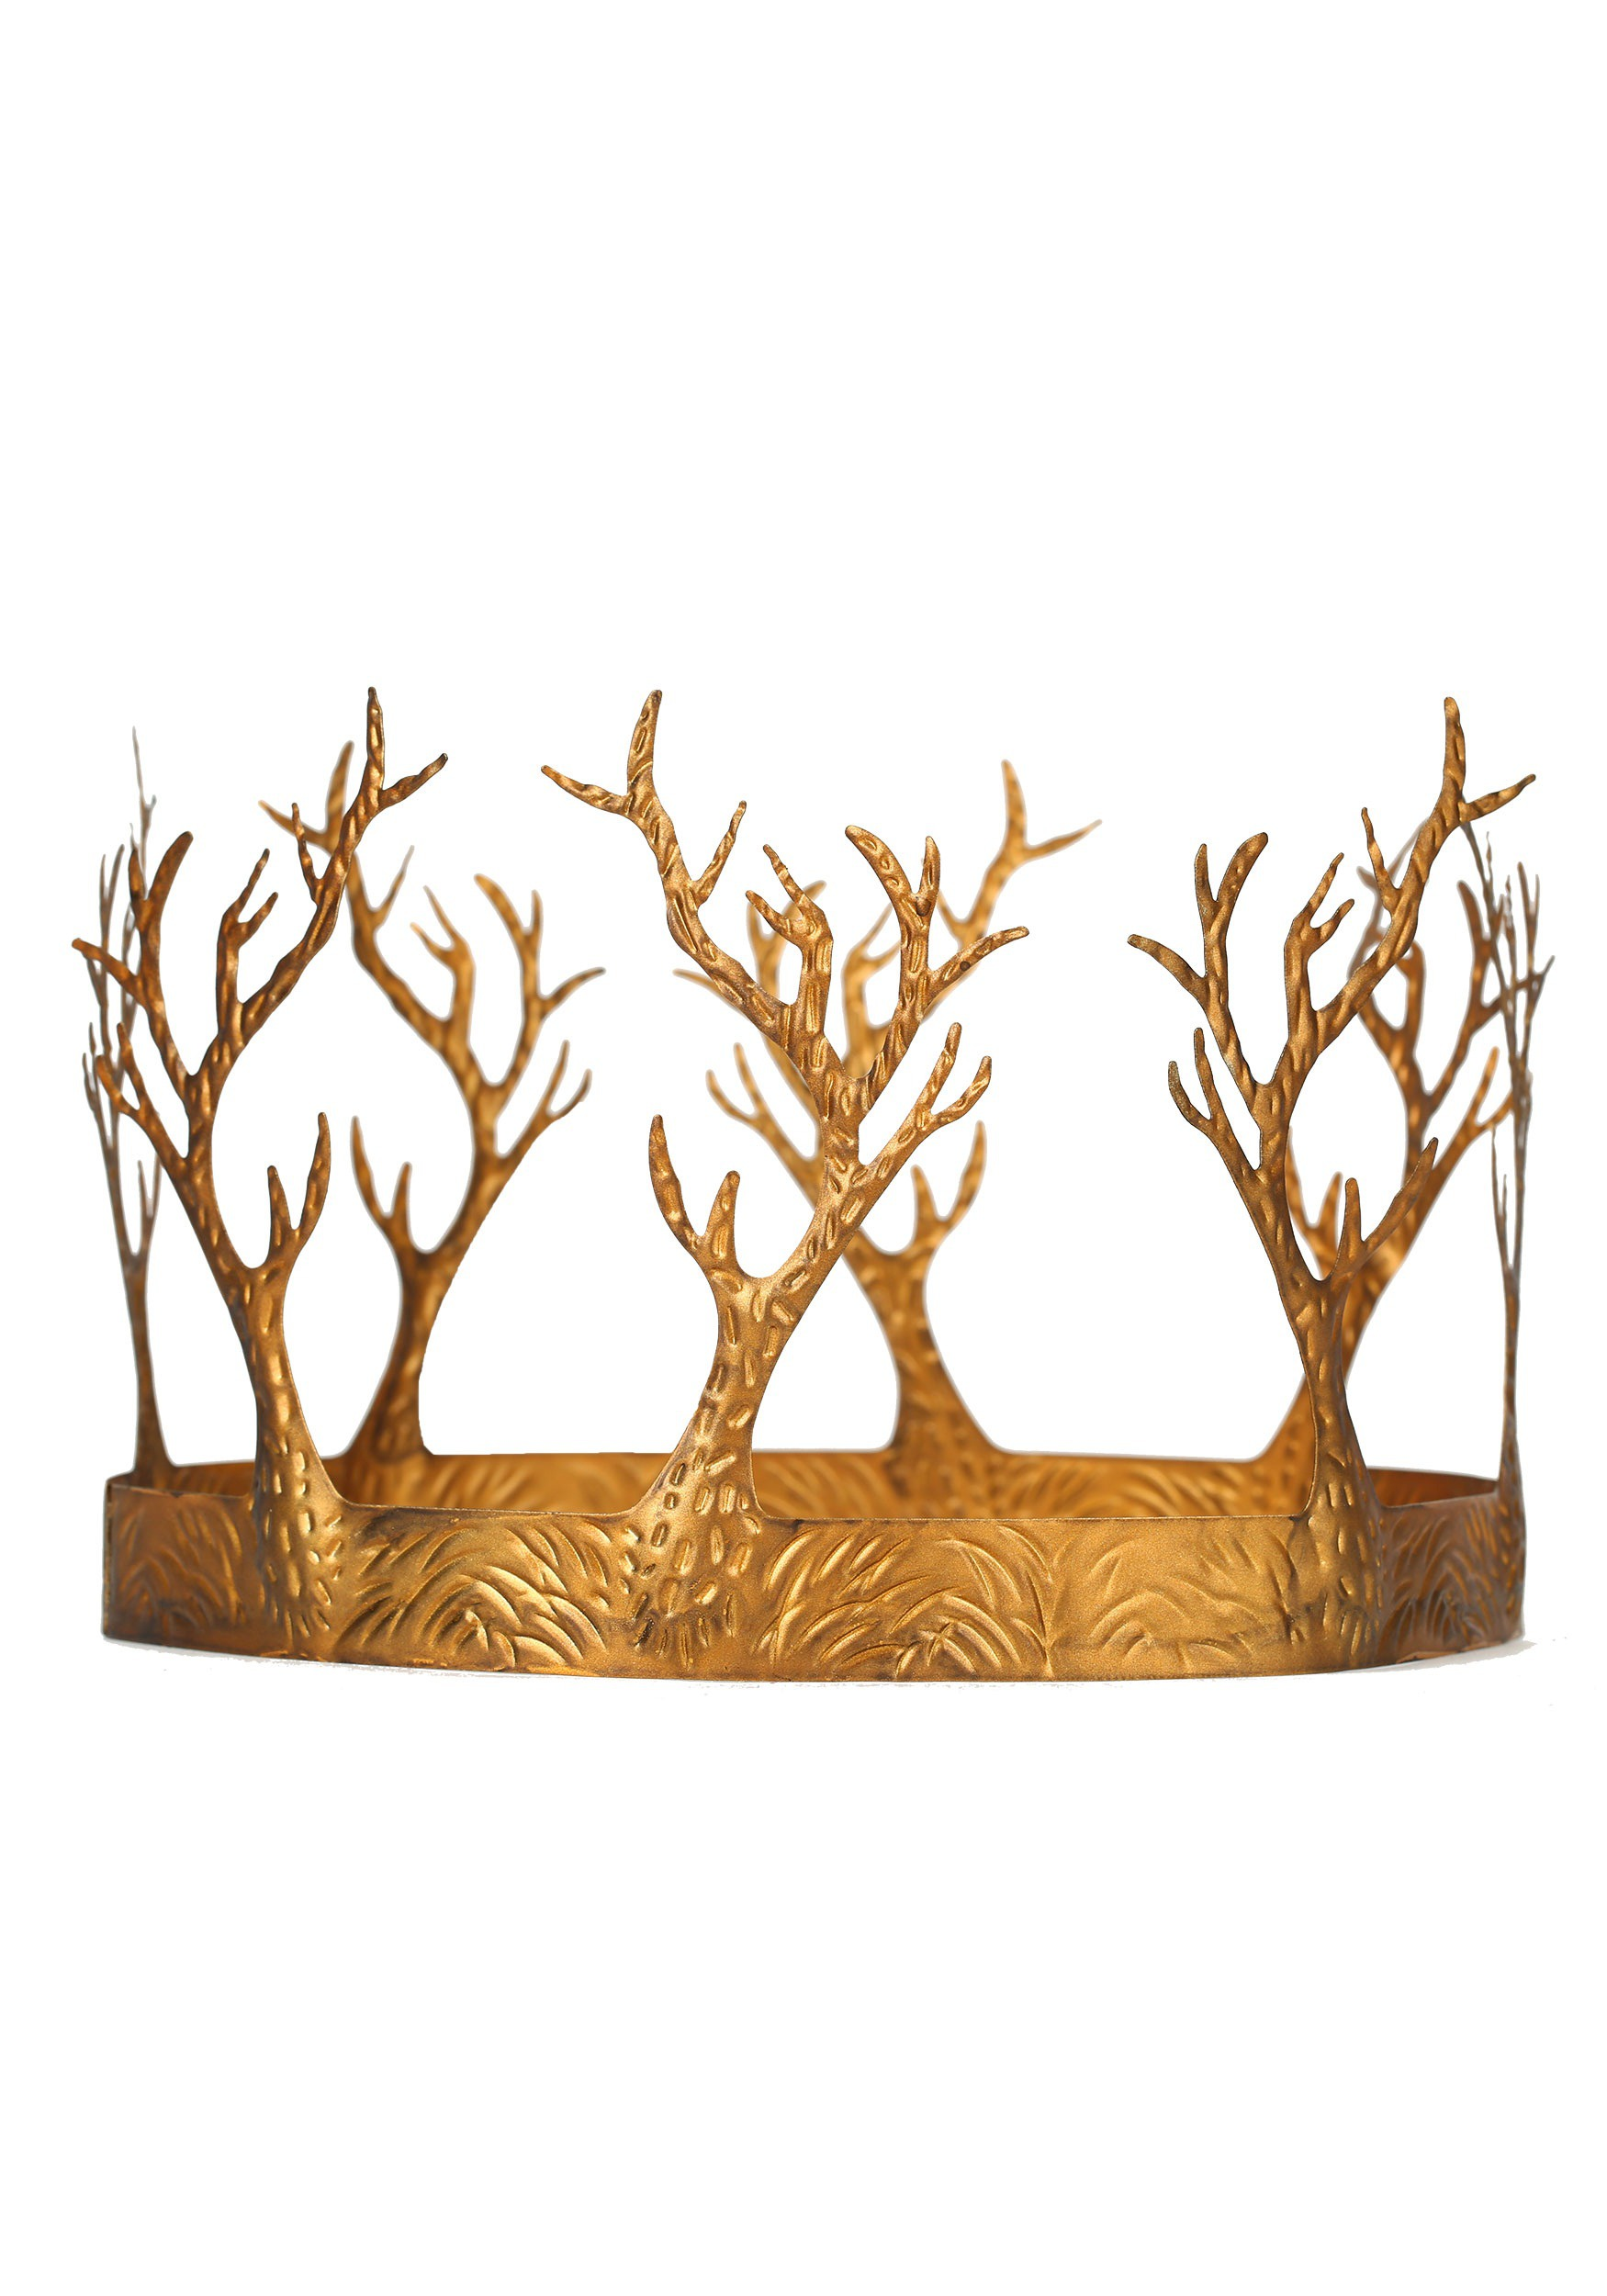 http://images.halloweencostumes.com/products/35374/1-1/fantasy-woodland-crown.jpg